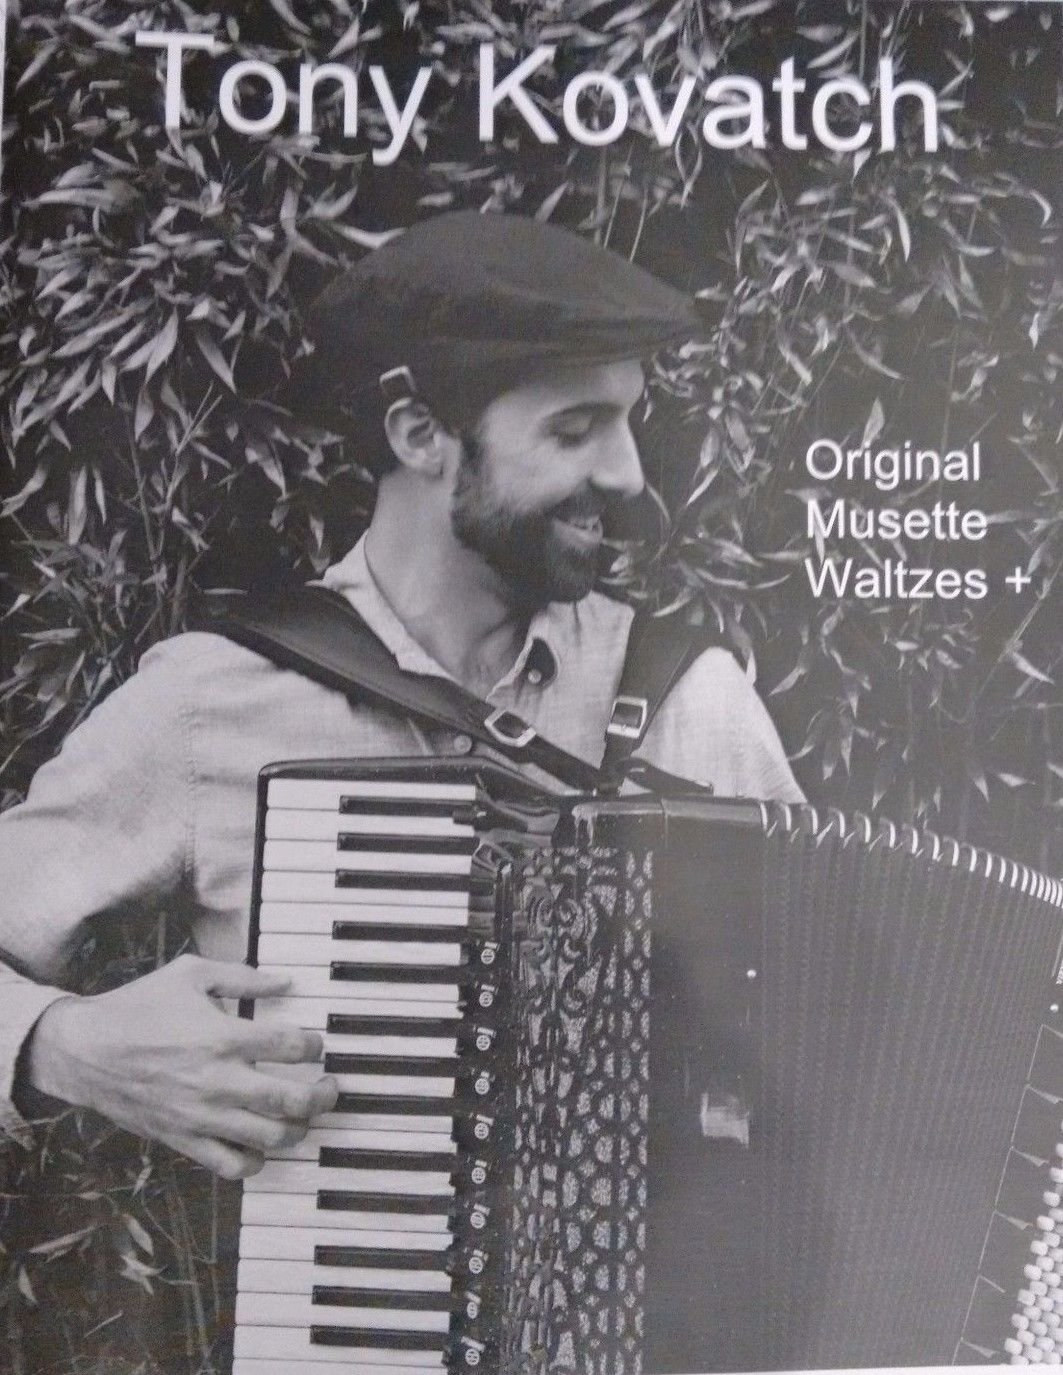 Original Musette Waltzes + by Tony Kovatch with Free Online Accordion Lessons